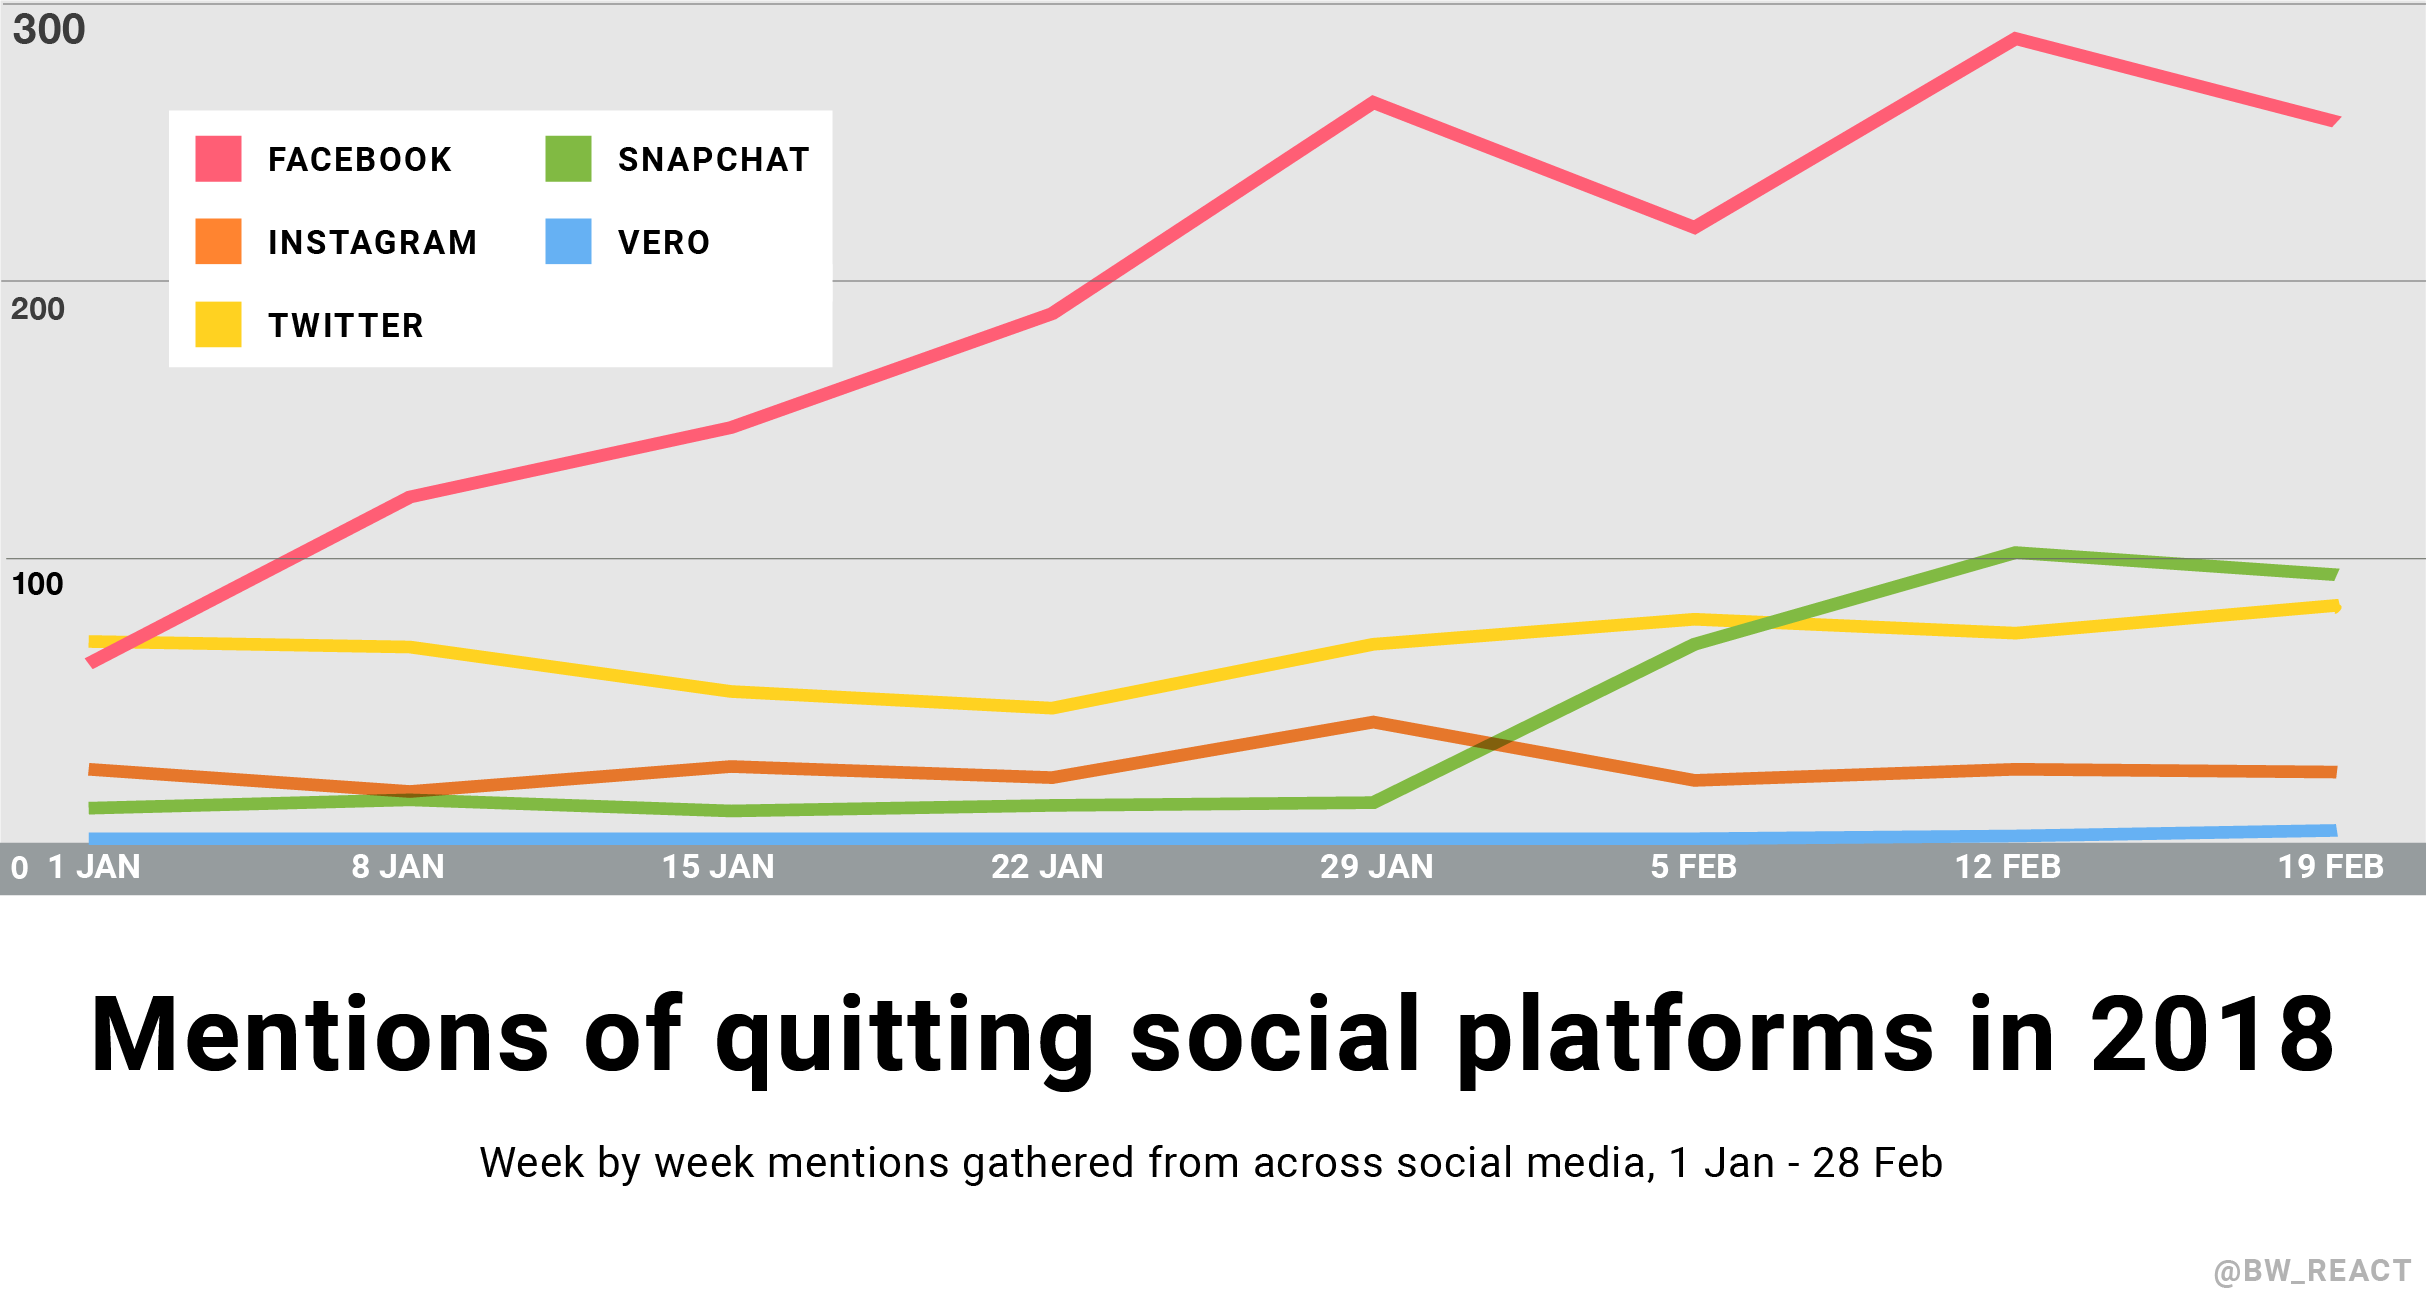 A line chart looks at quitting social media mentions over time, week by week. Snapchat's quitting mentions see an uptick in February, and Facebook's grow most weeks.